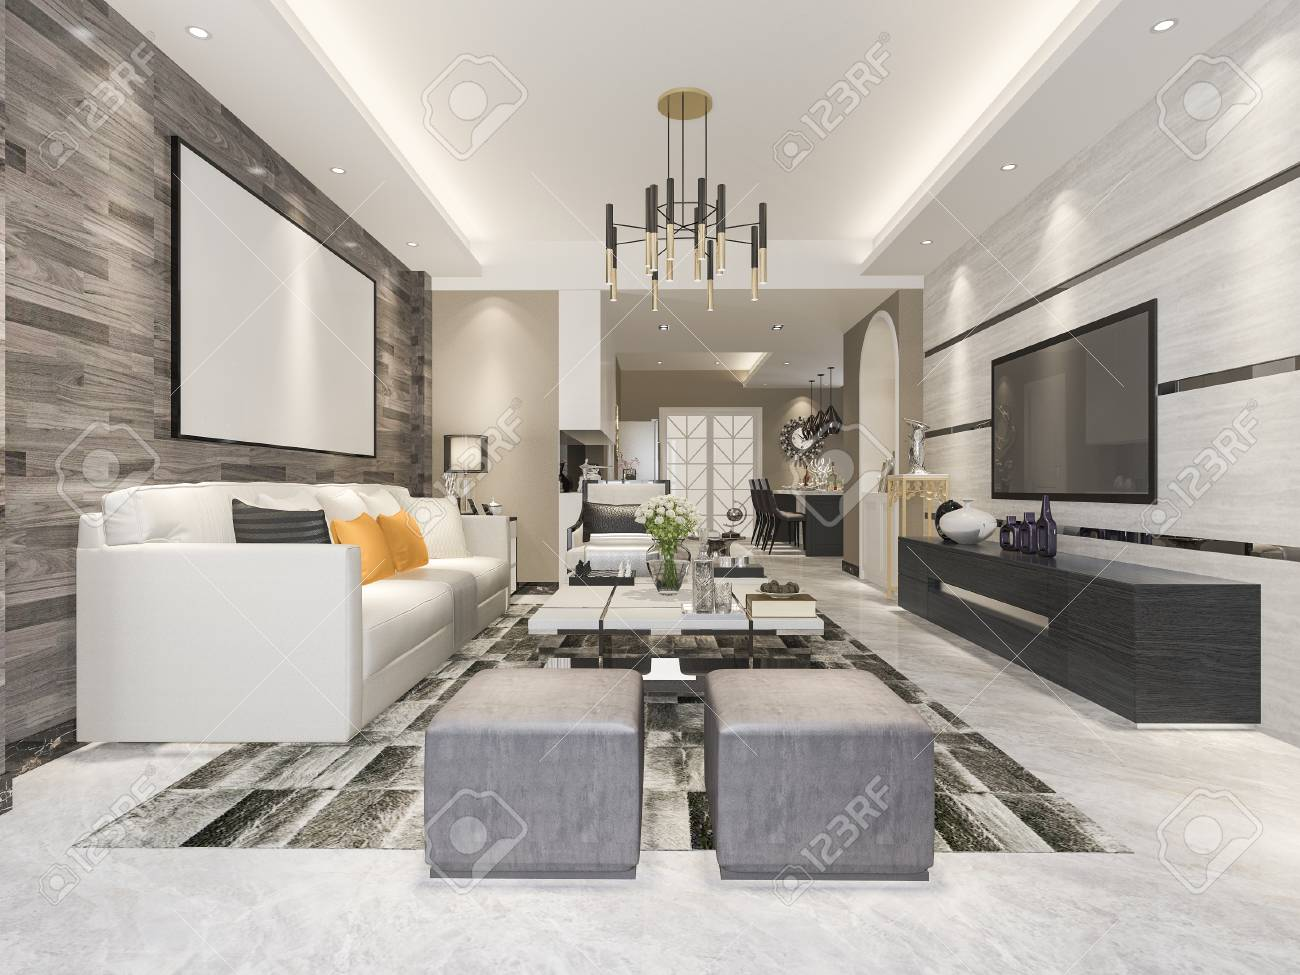 3d Rendering Modern Dining Room And Living With Luxury Decor Standard Bild